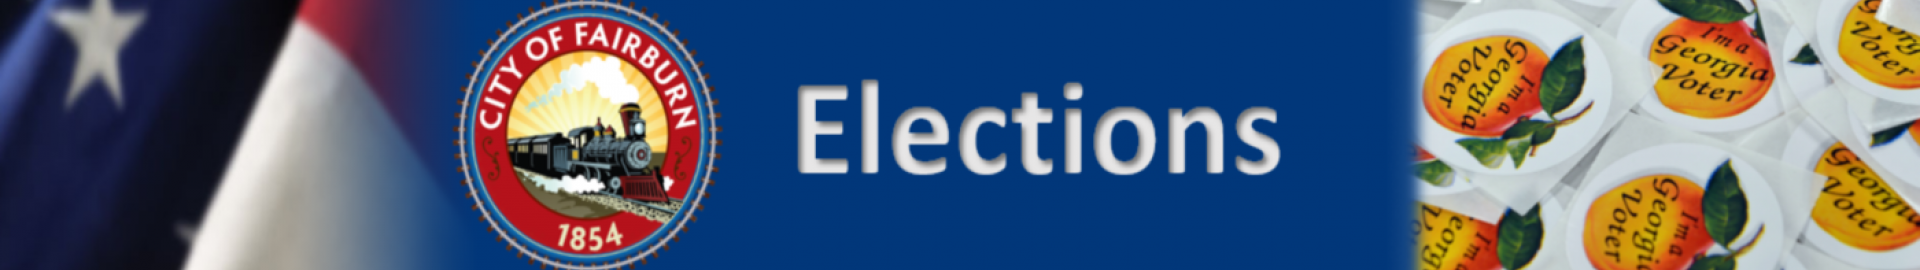 Voters & Elections Information